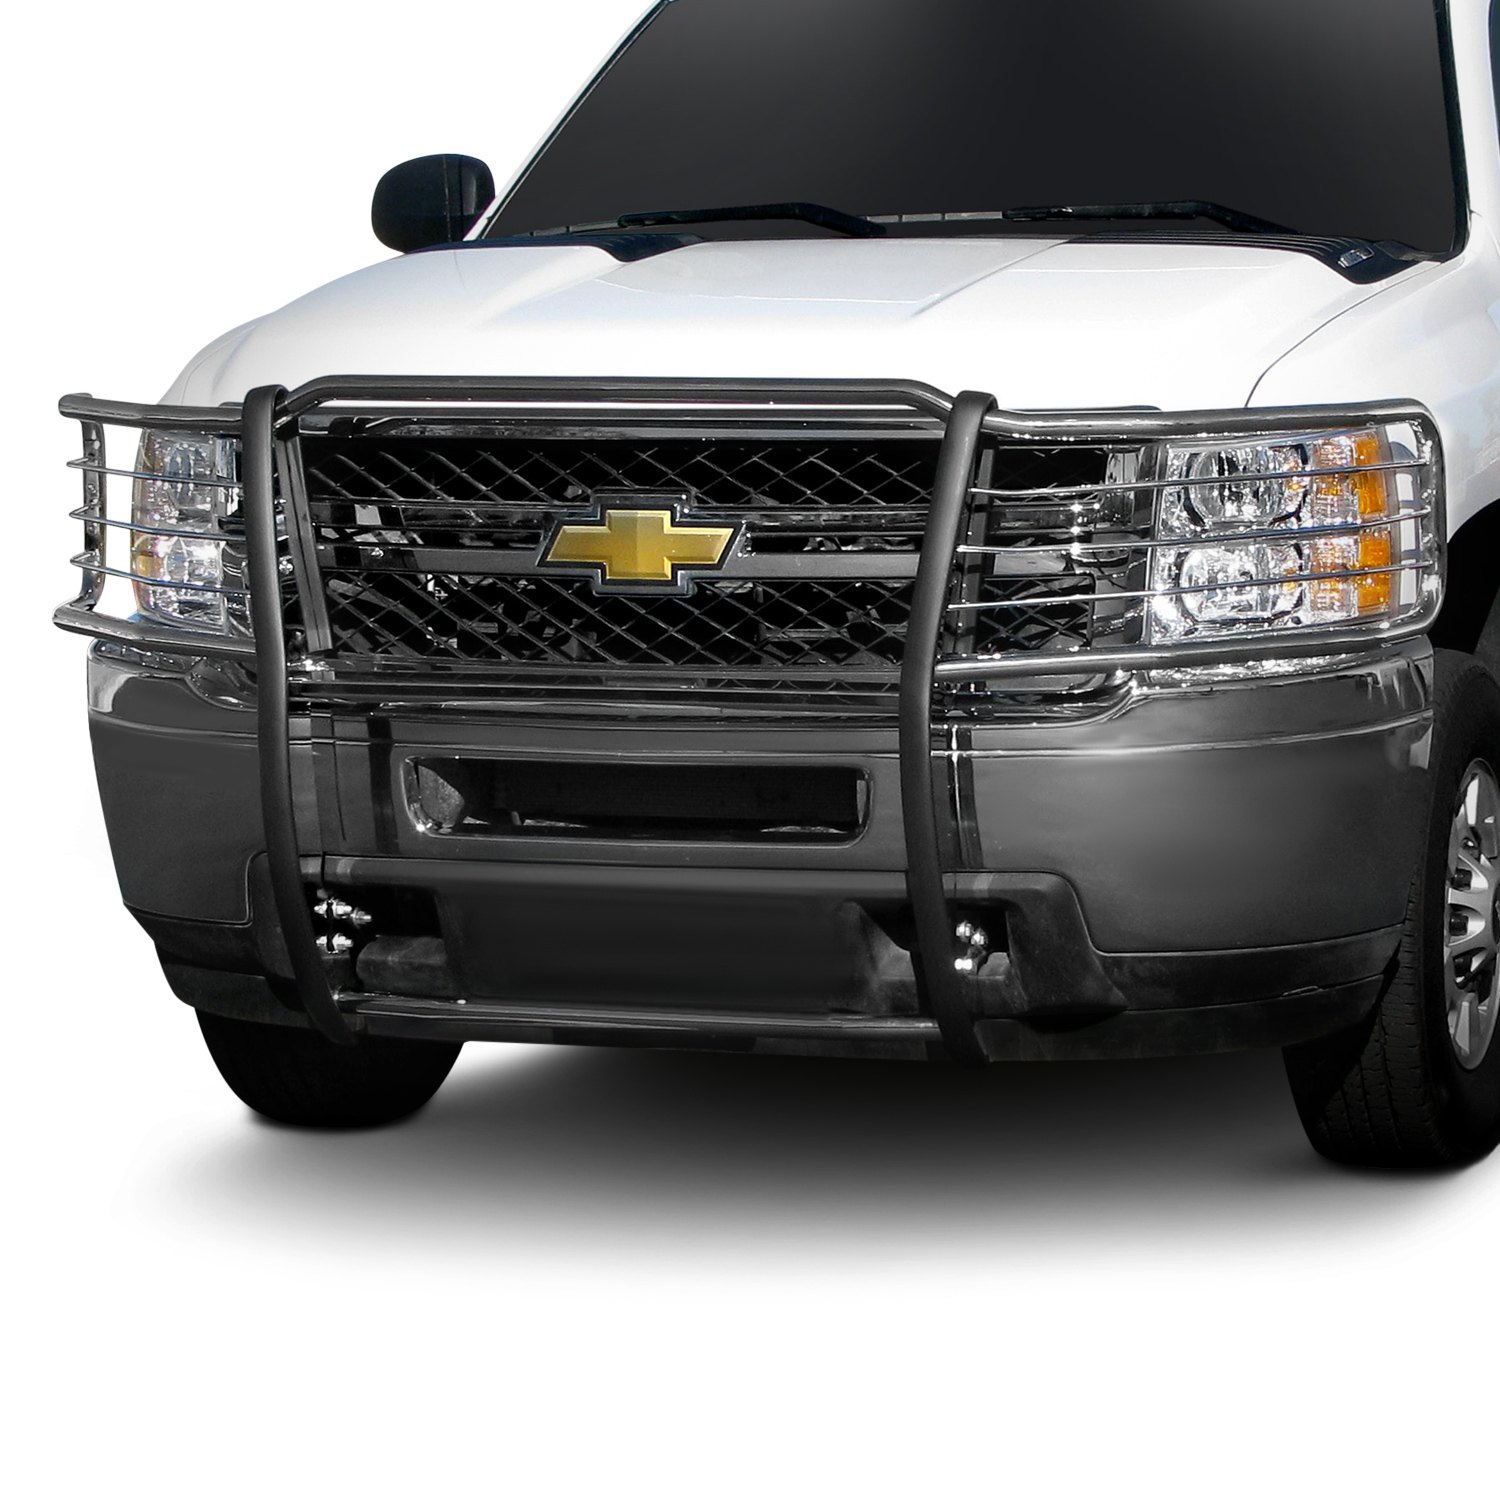 Chevy Brush Guard : Steelcraft chevy silverado grille guard